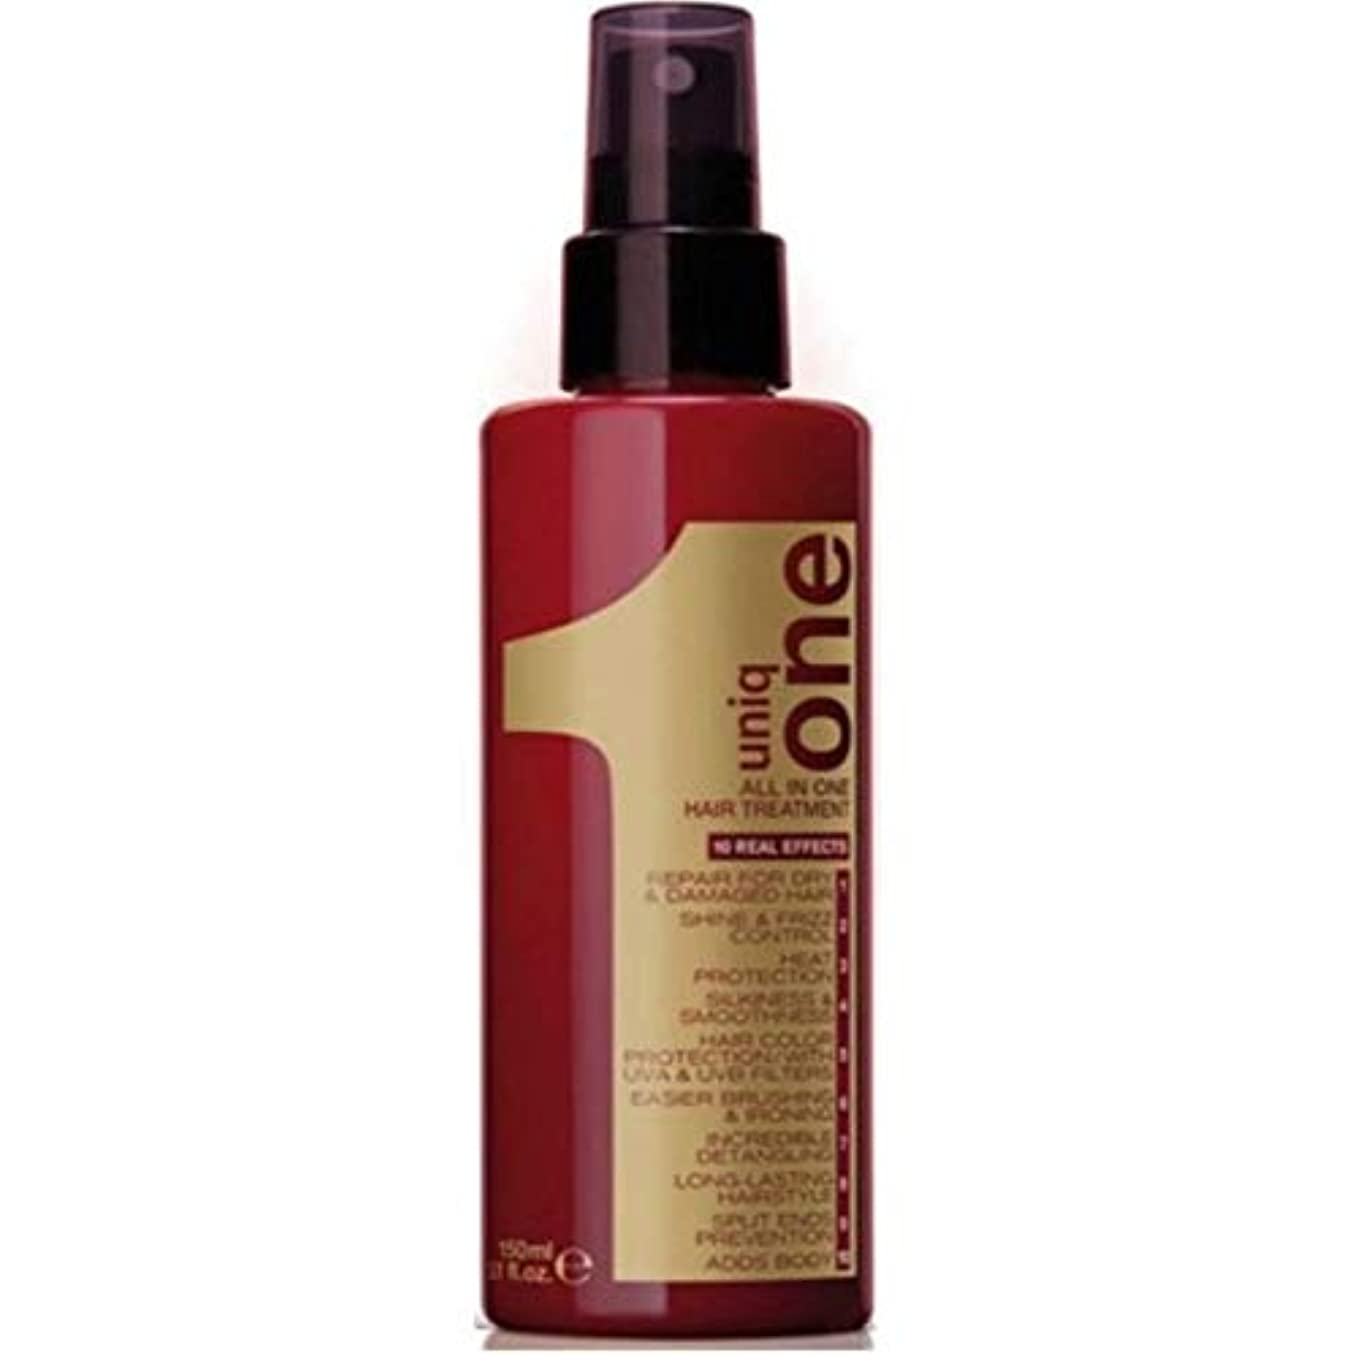 驚いた雪だるま時計回りUniq One Revlon All In One Hair Treatment 5.1Oz. - New Original by Uniq One by Uniq One